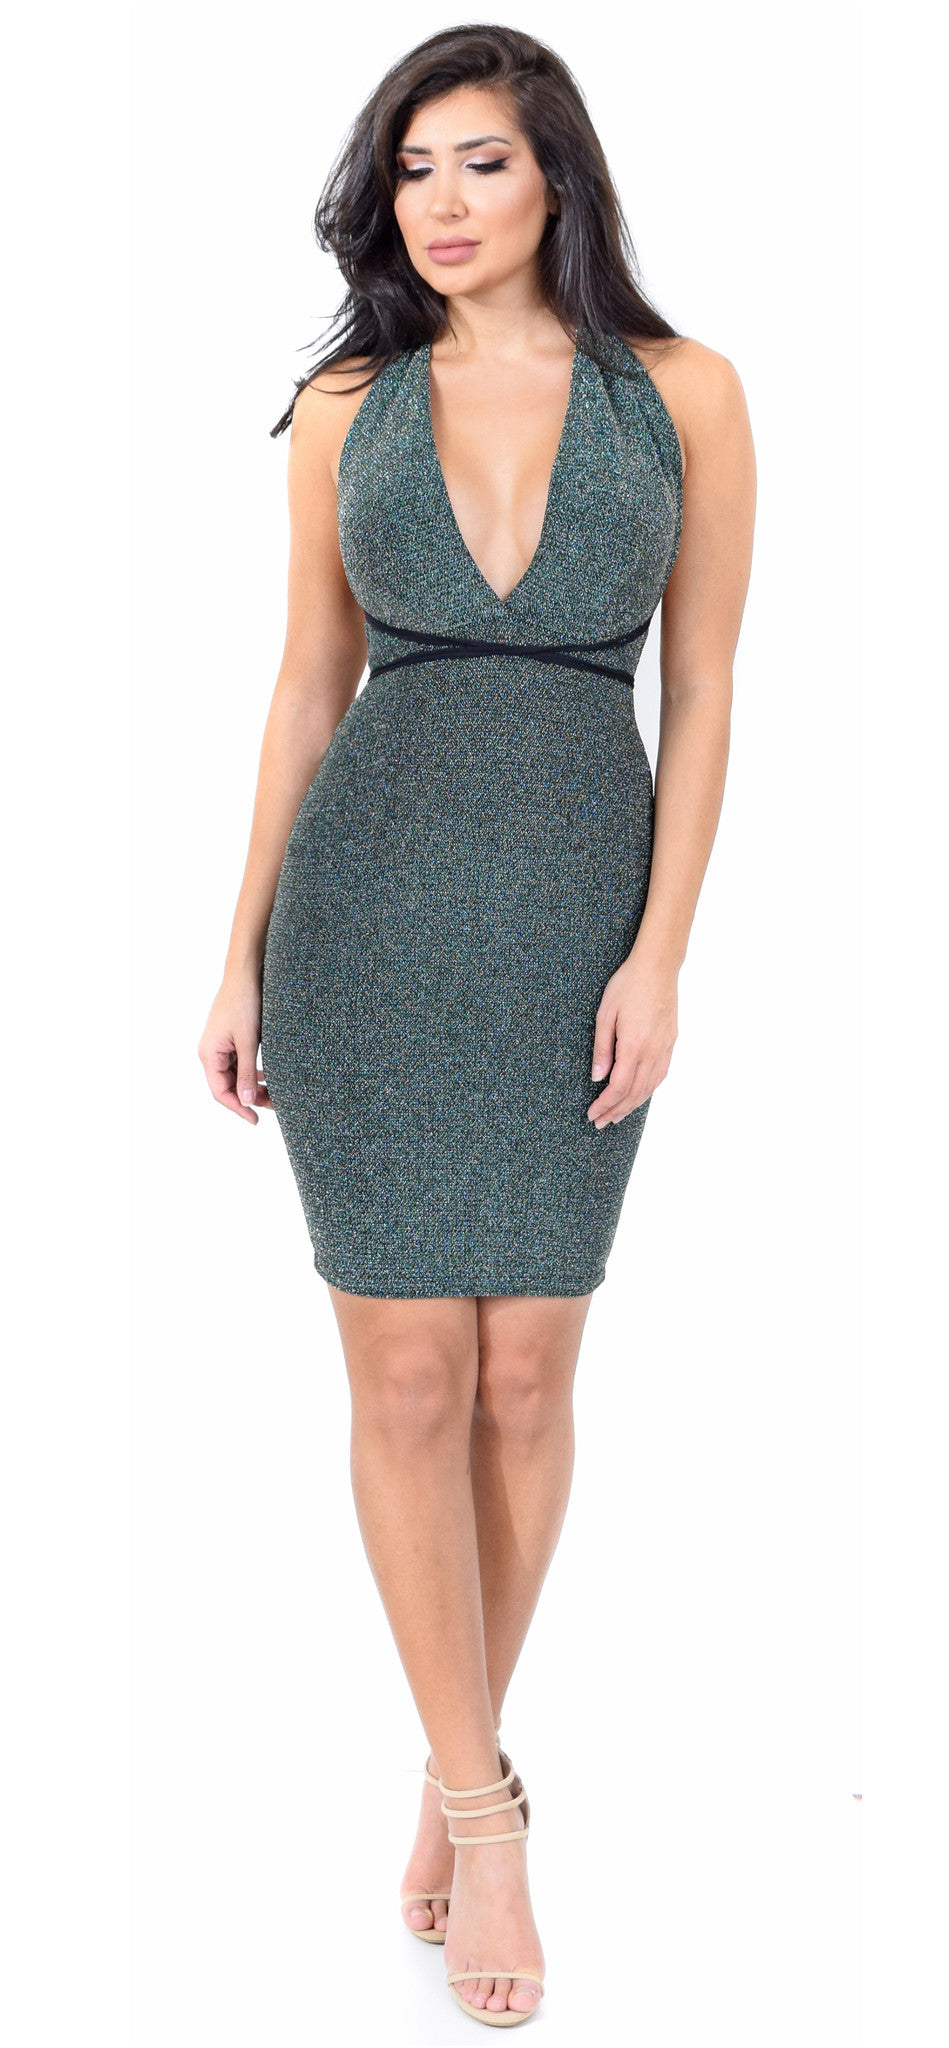 Green Metallic Halter Neck Dress - Emprada